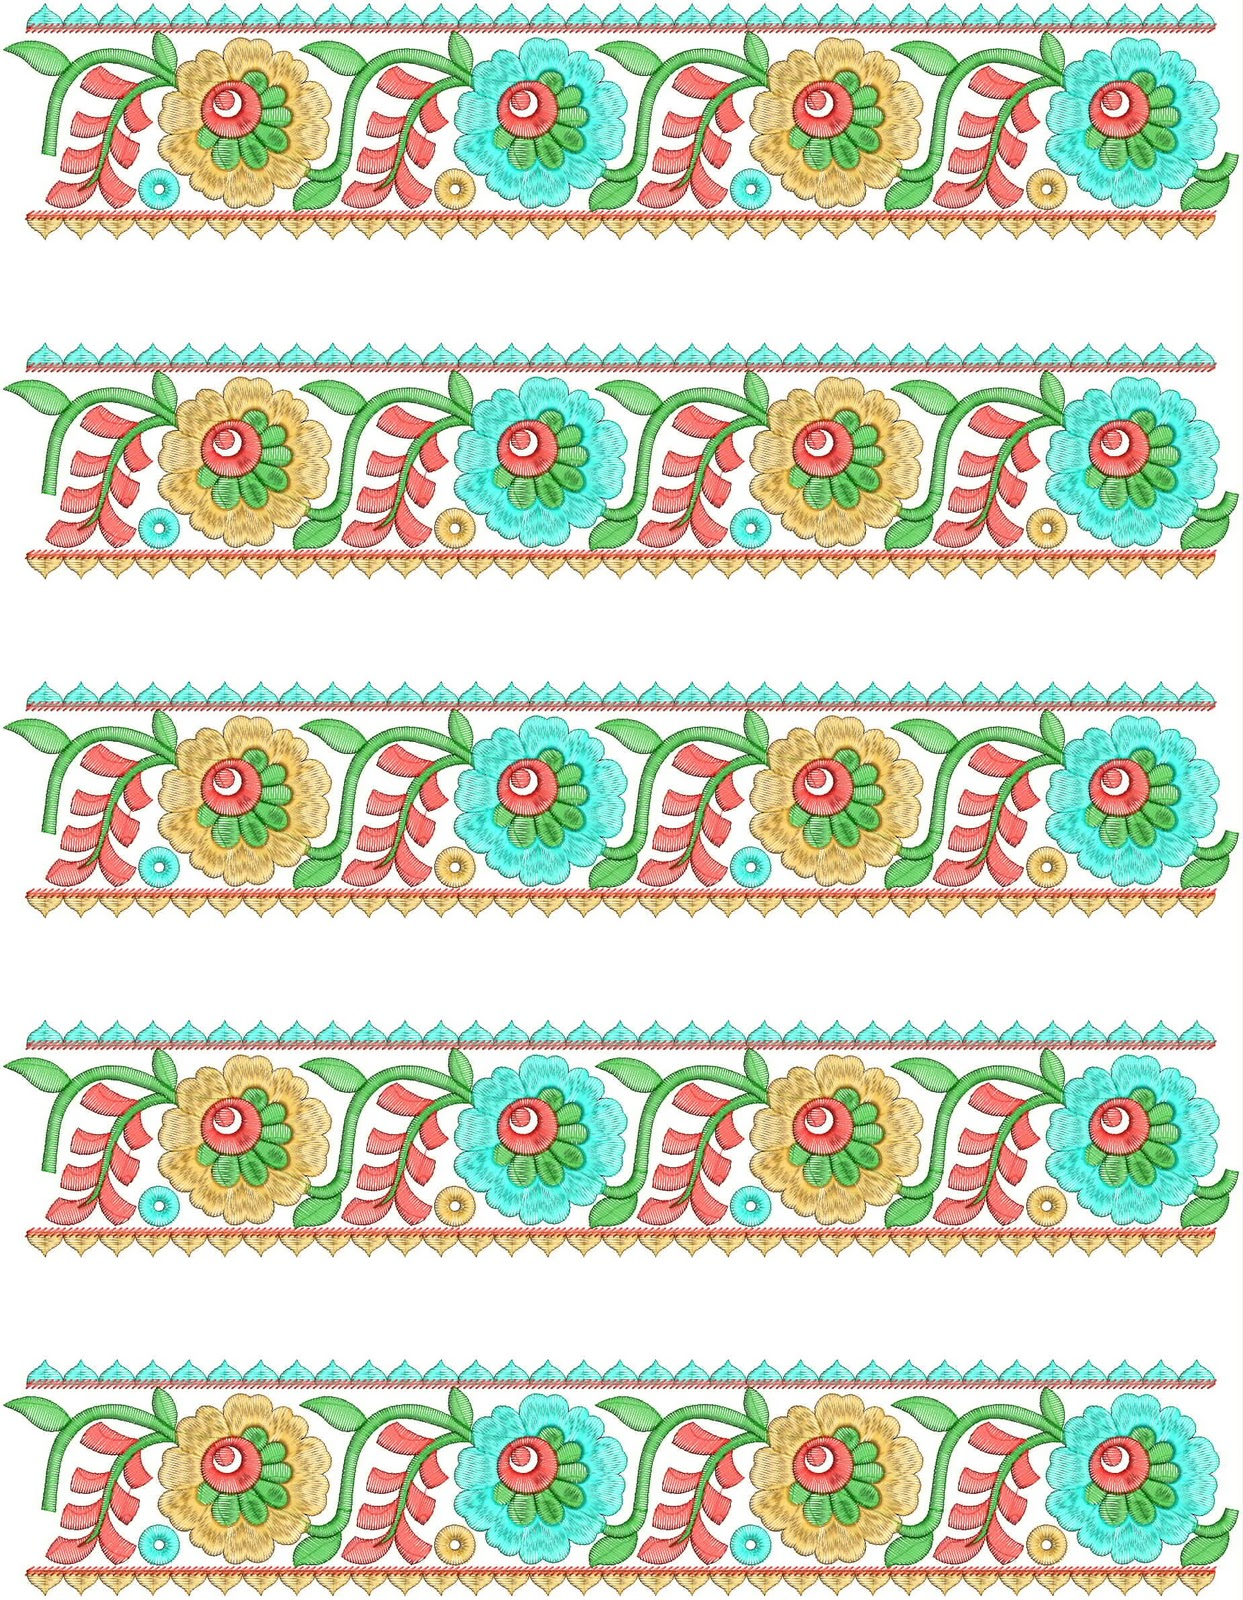 embroidery design mix collection butta style free embroidery designs